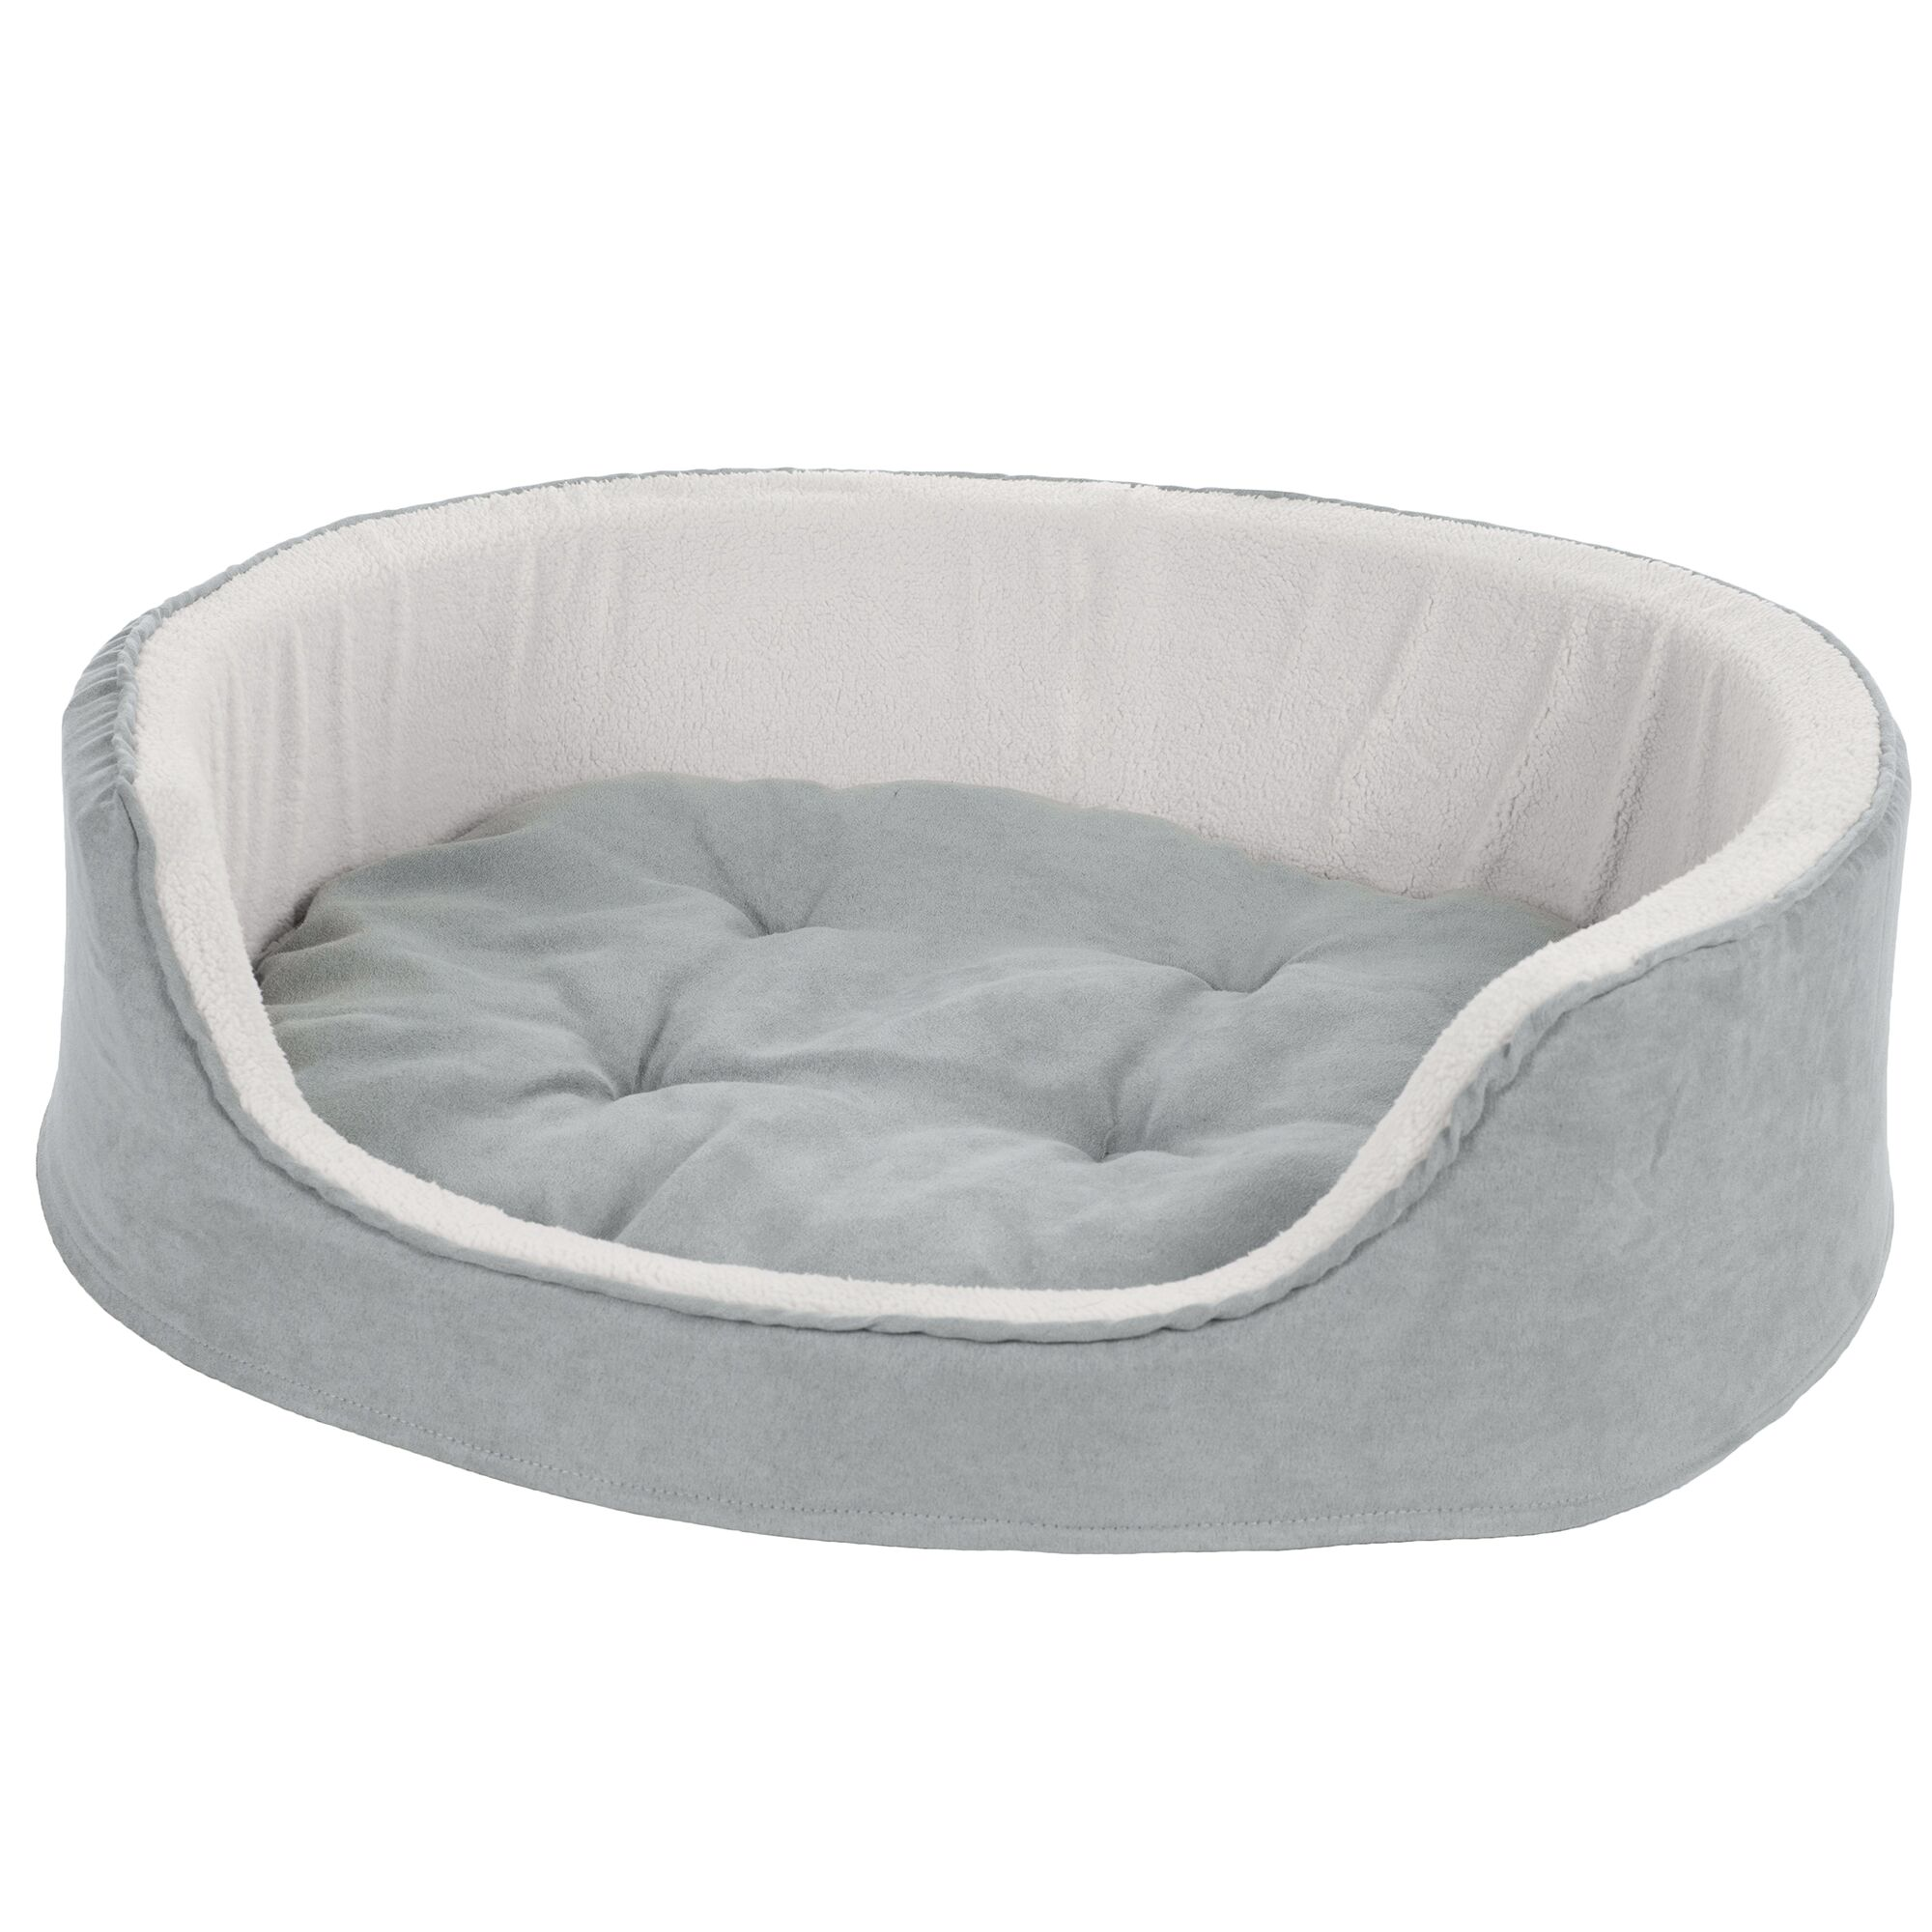 Microsuede Pet Bolster with Zippered Closure Color: Gray, Size: Medium (26